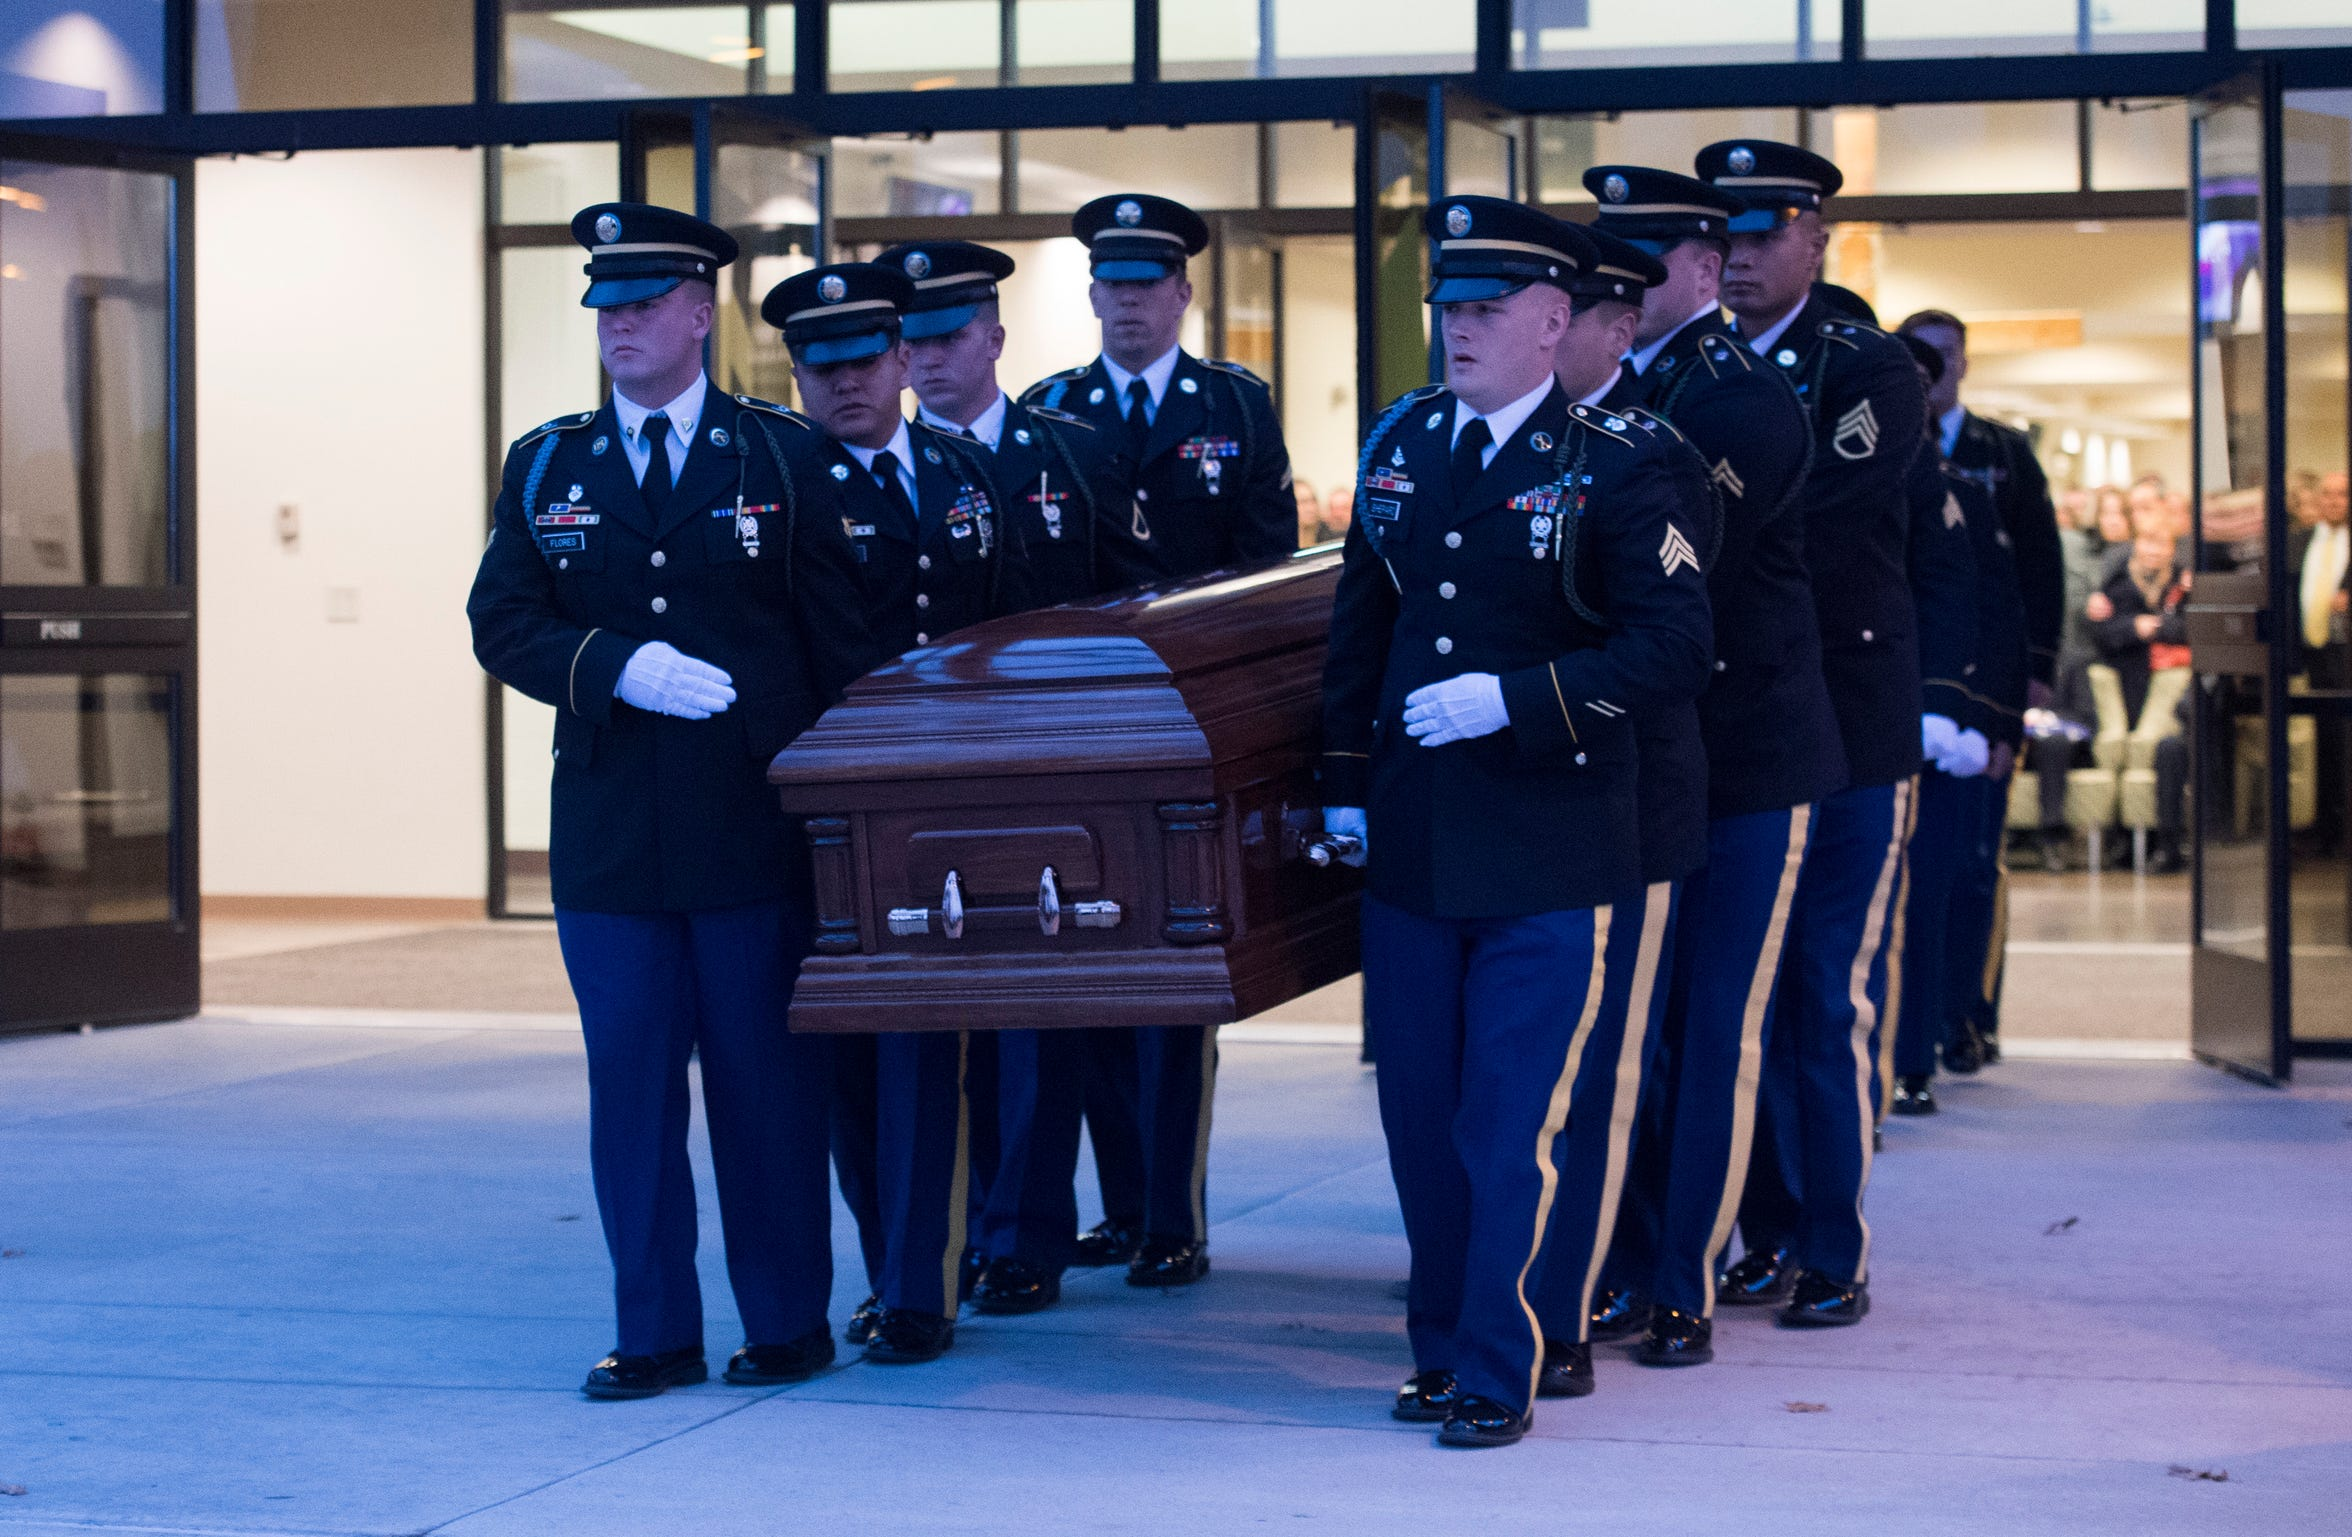 """Fellow soldiers carry the casket of Army Sgt. Drew Watters out of Christian Fellowship Church during a """"Celebration of Life"""" ceremony in Evansville, Ind., Wednesday afternoon, Nov. 14, 2018. The 23-year-old Evansville native was killed in a training accident in his Tacoma, Washington, base."""